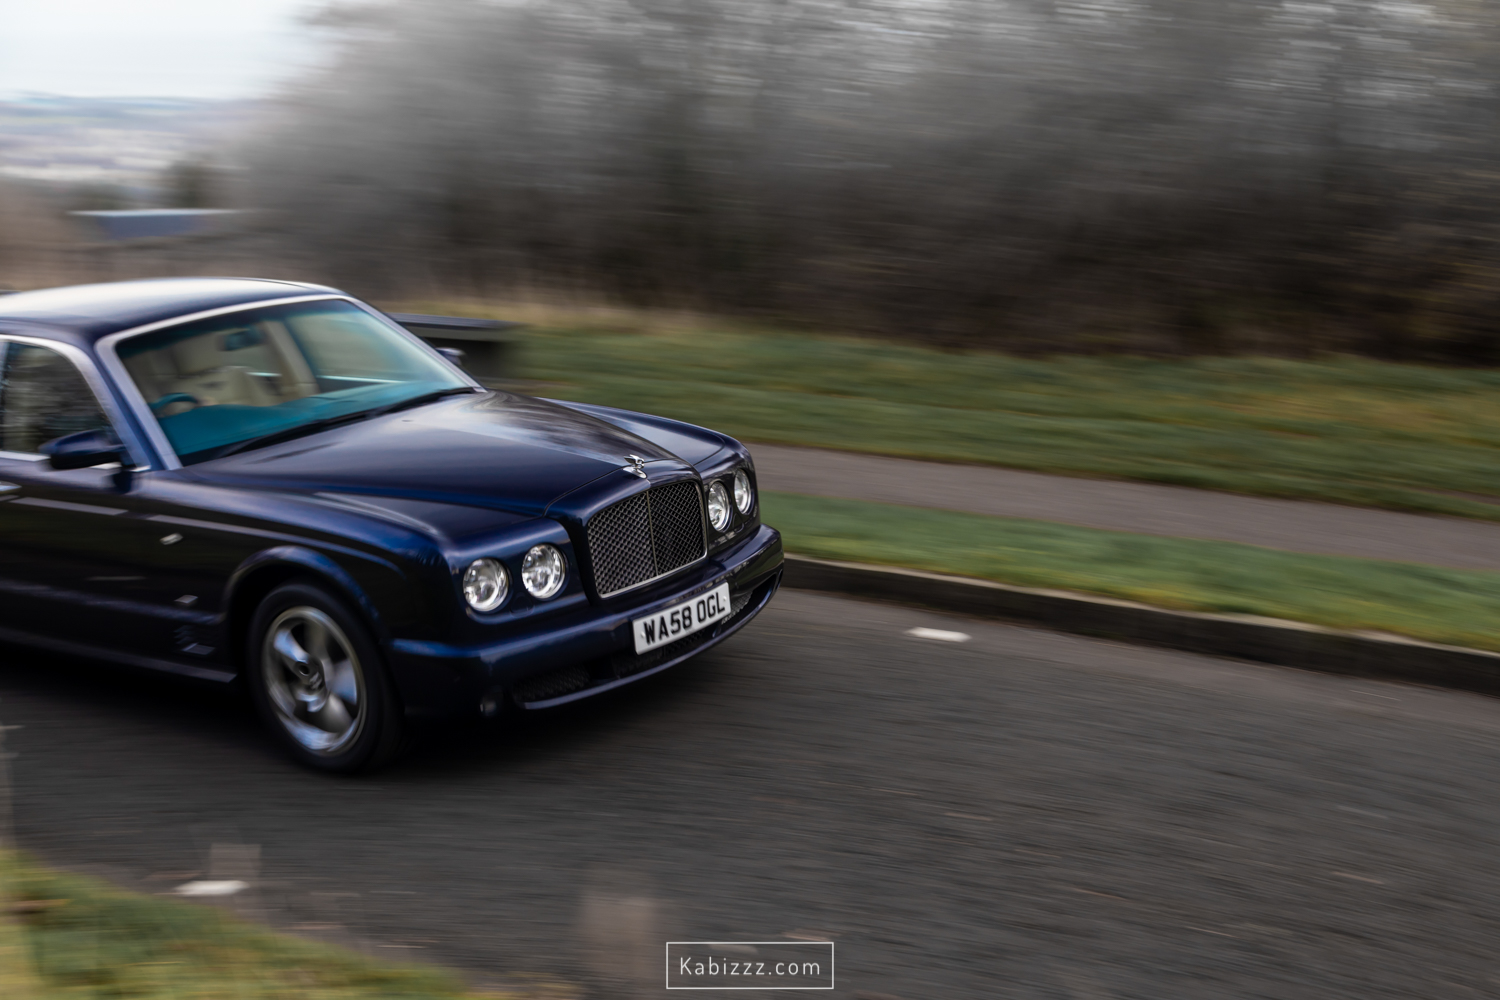 2008_bentley_arnage_blue_automotive_photography_kabizzz-2.jpg